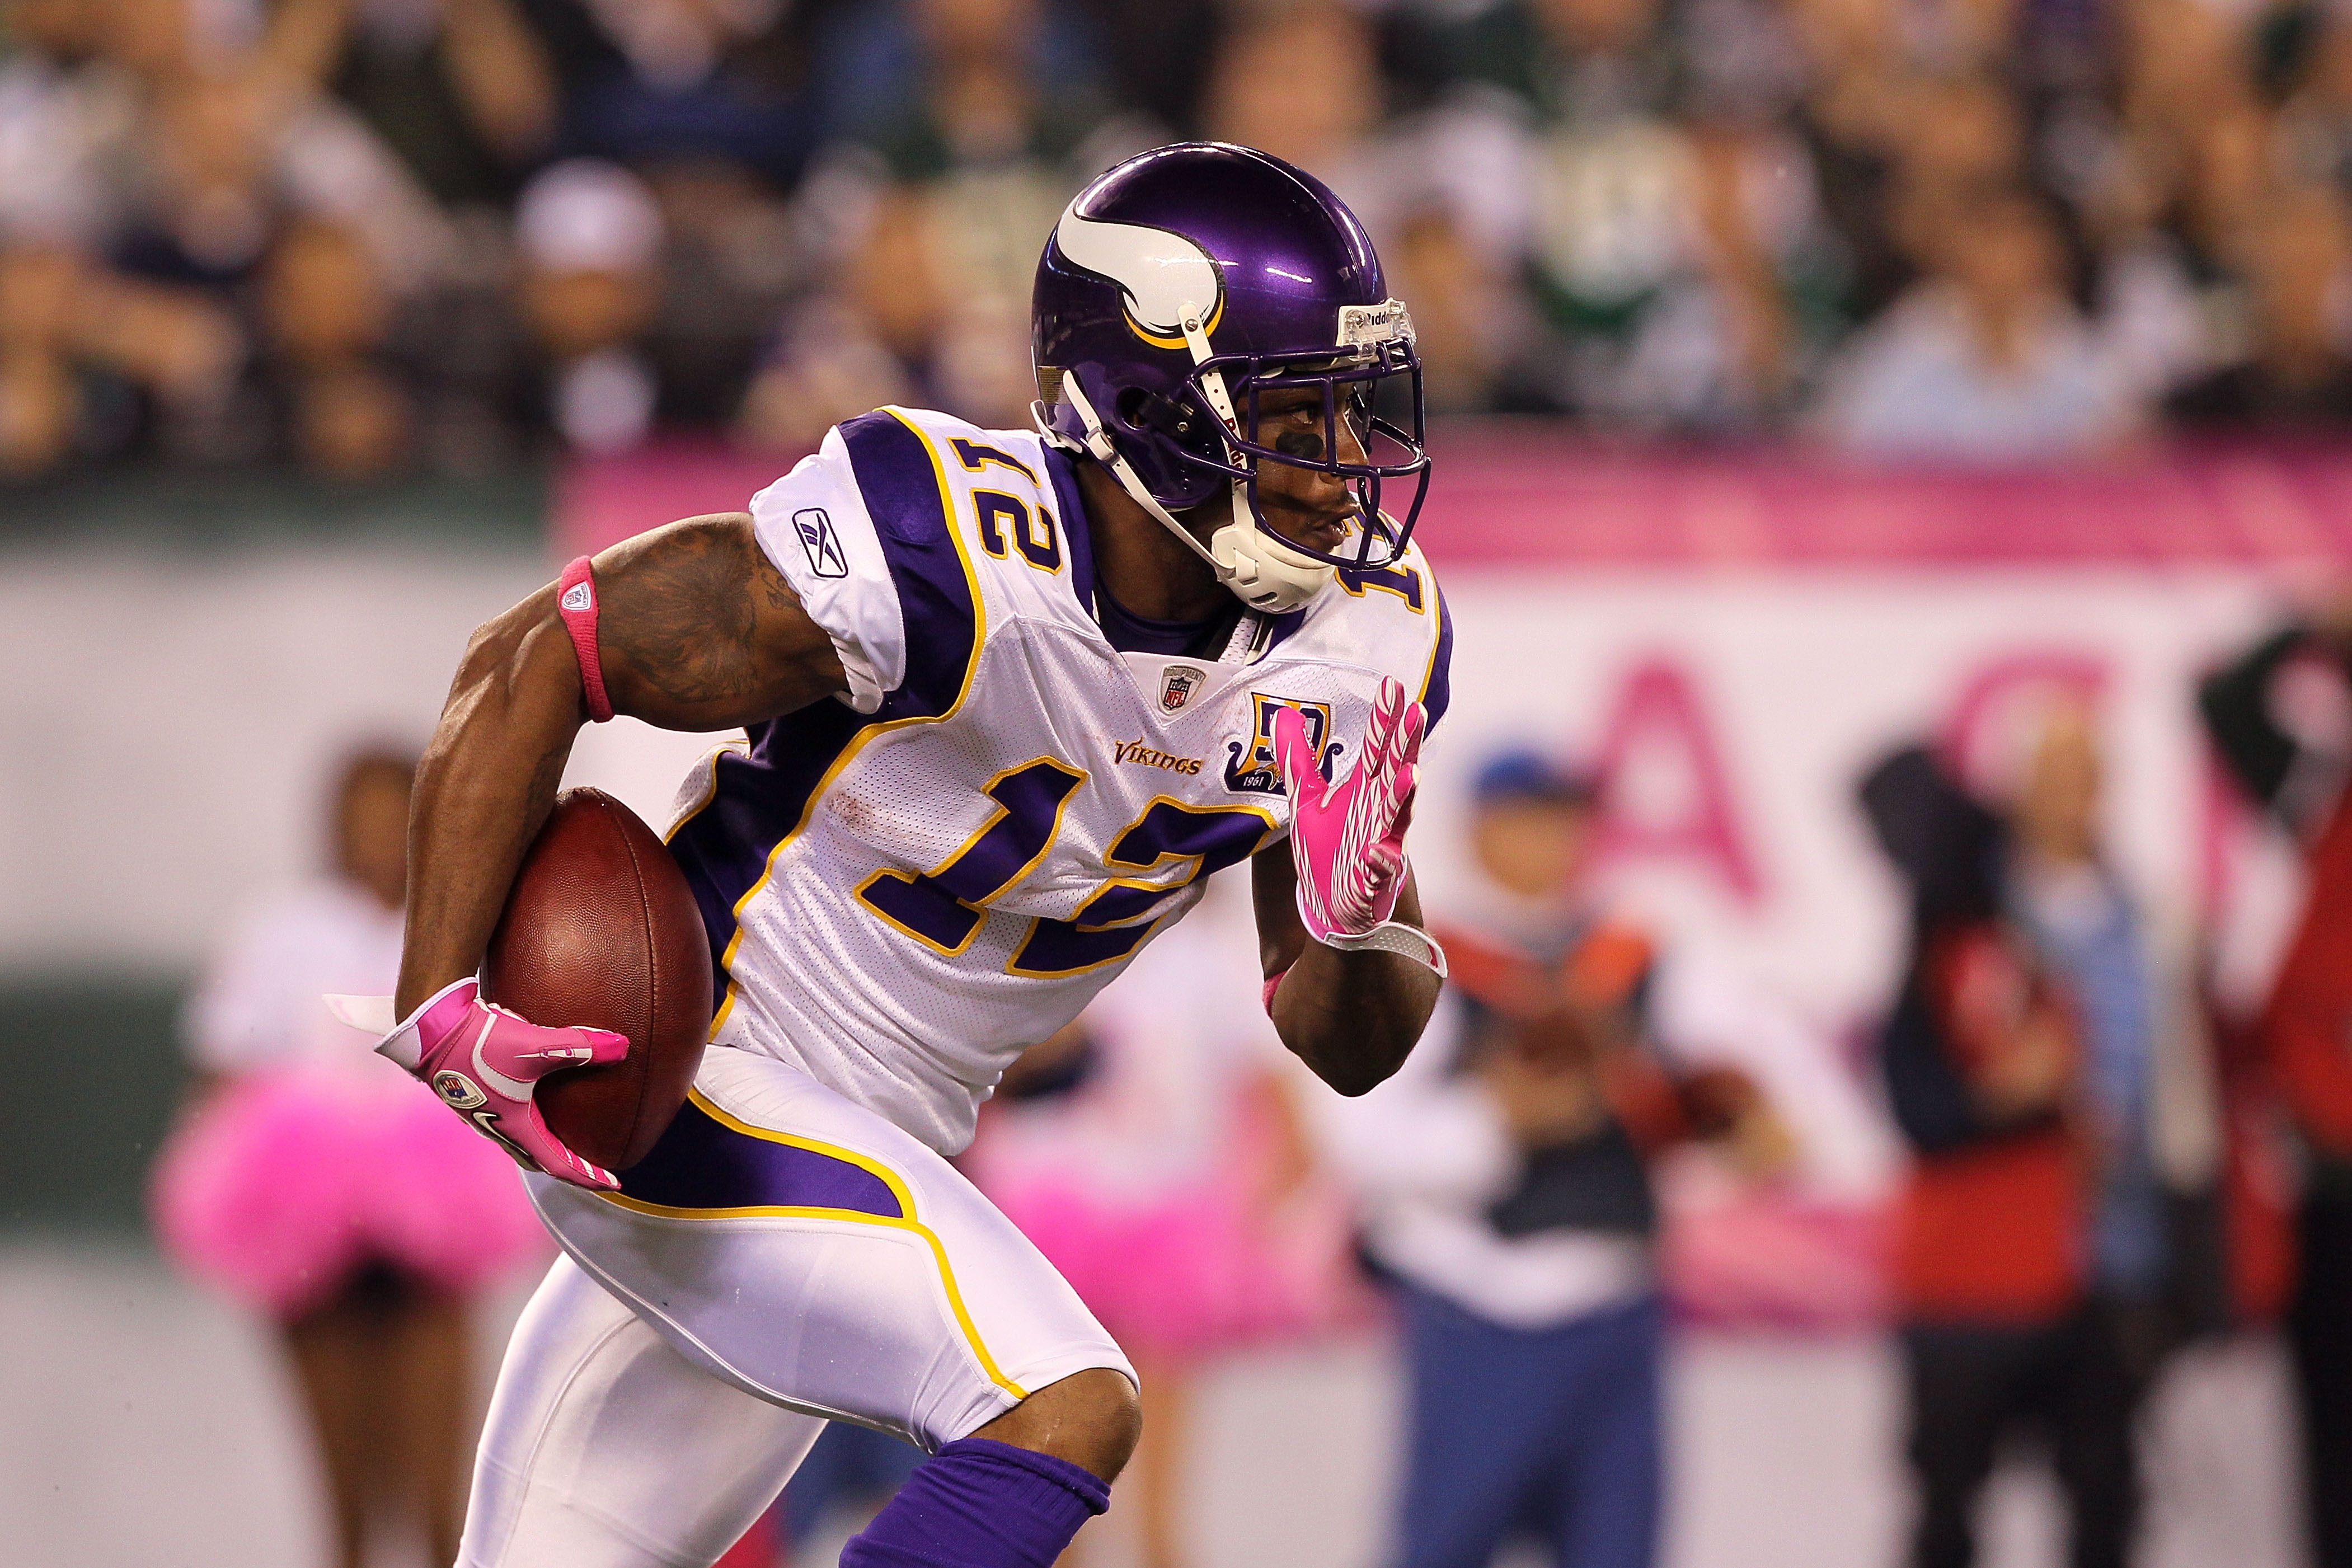 EAST RUTHERFORD, NJ - OCTOBER 11:  Percy Harvin #12 of the Minnesota Vikings returns a kick against the New York Jets at New Meadowlands Stadium on October 11, 2010 in East Rutherford, New Jersey. The Jets won 29-20. (Photo by Jim McIsaac/Getty Images)